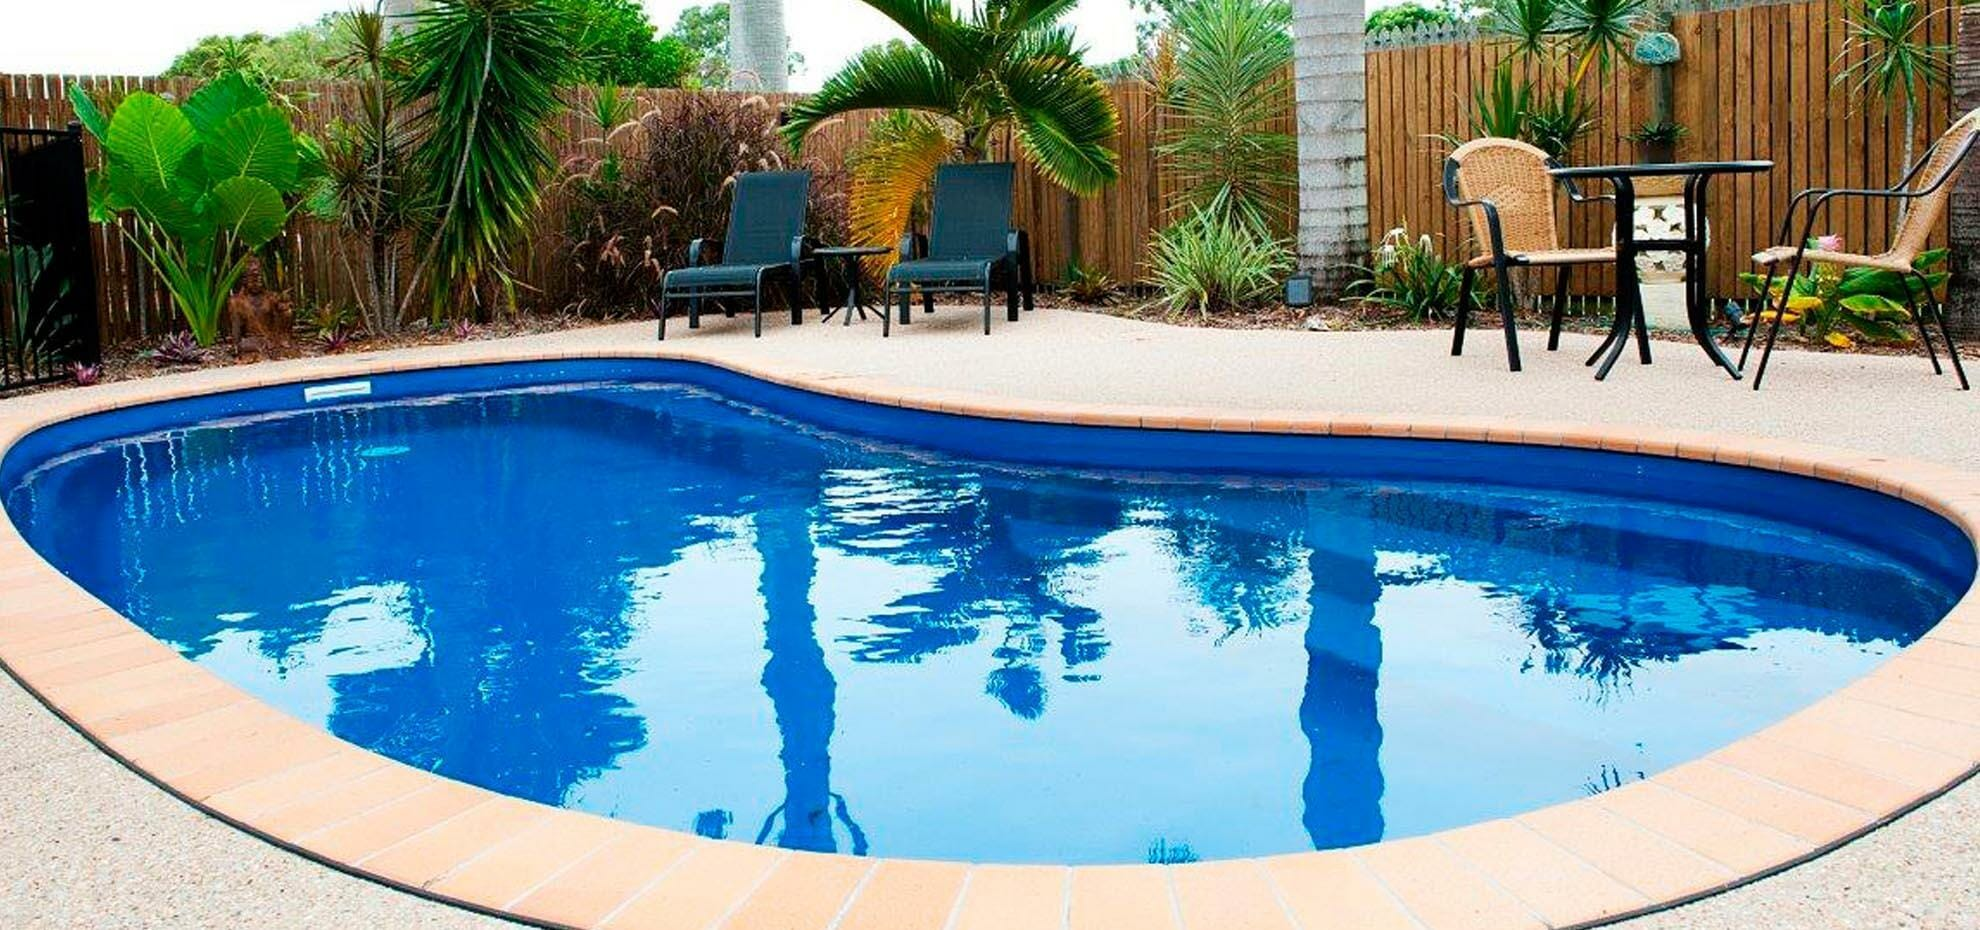 Tuscany Fiberglass pool with coping